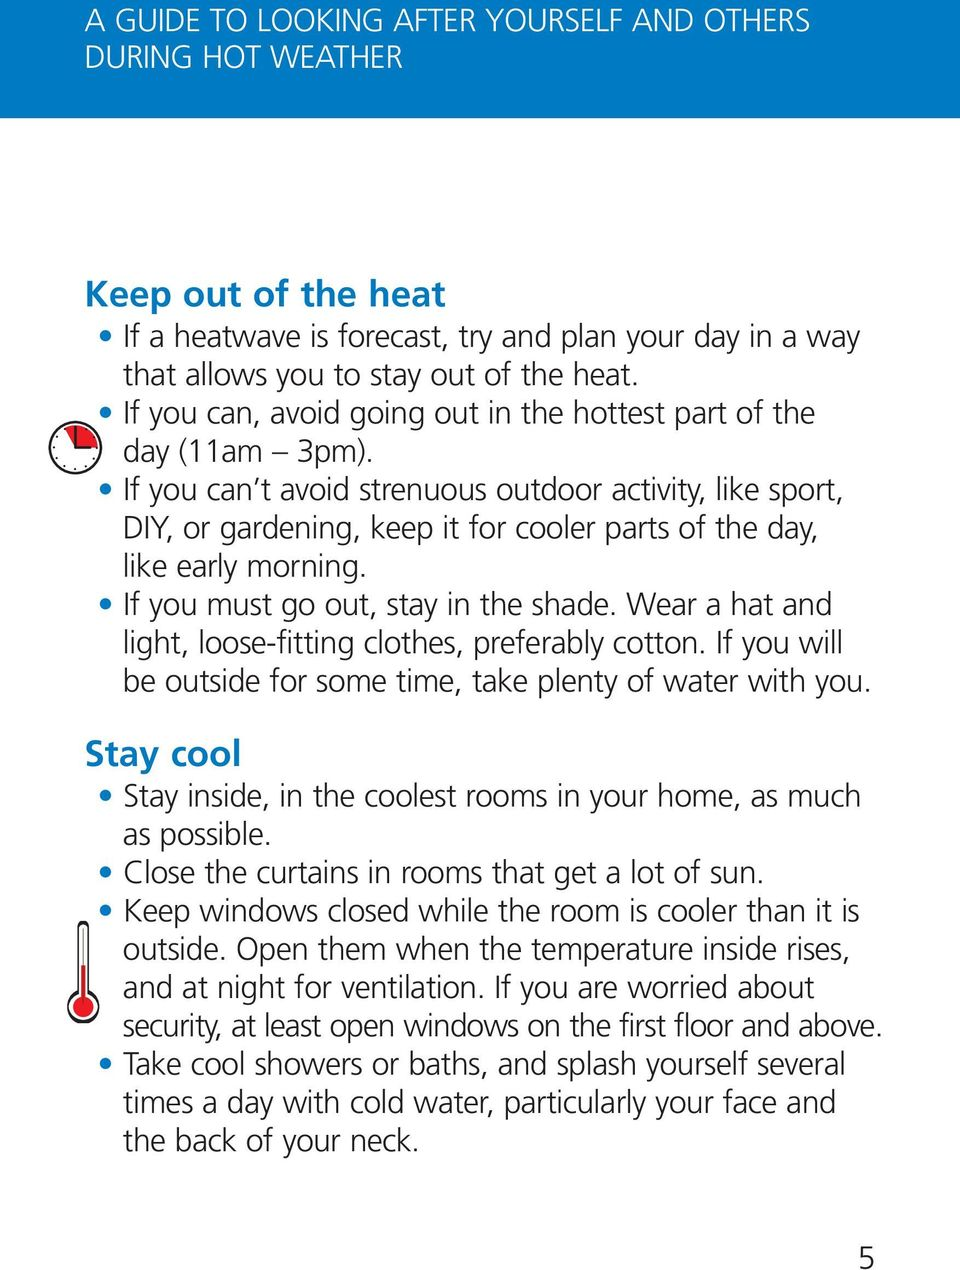 If you can t avoid strenuous outdoor activity, like sport, DIY, or gardening, keep it for cooler parts of the day, like early morning. If you must go out, stay in the shade.